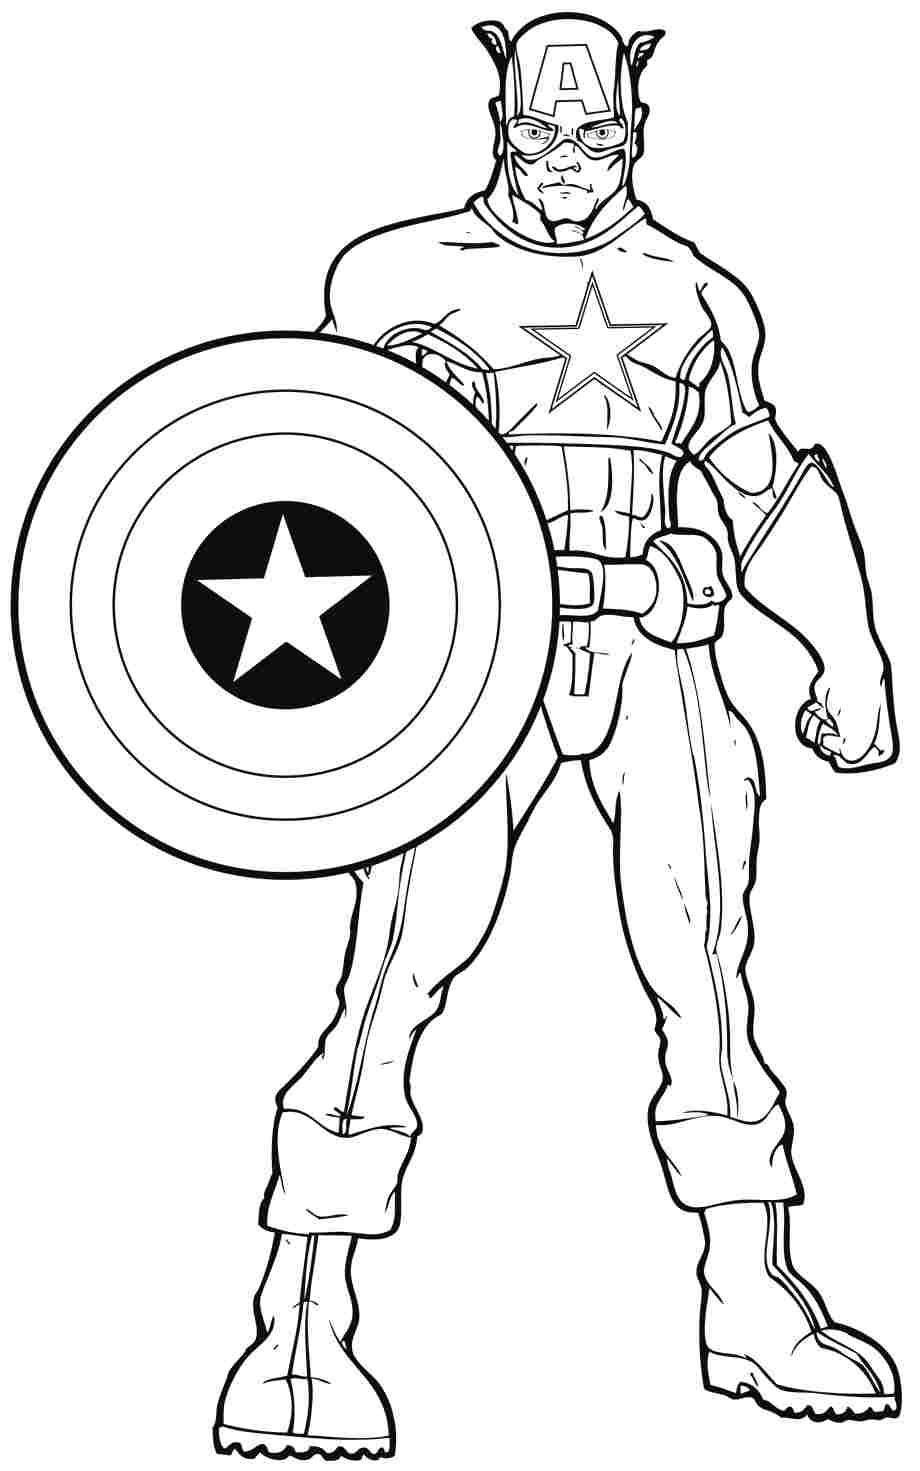 coloring pages superhero storm superhero coloring pages download and print for free pages superhero coloring